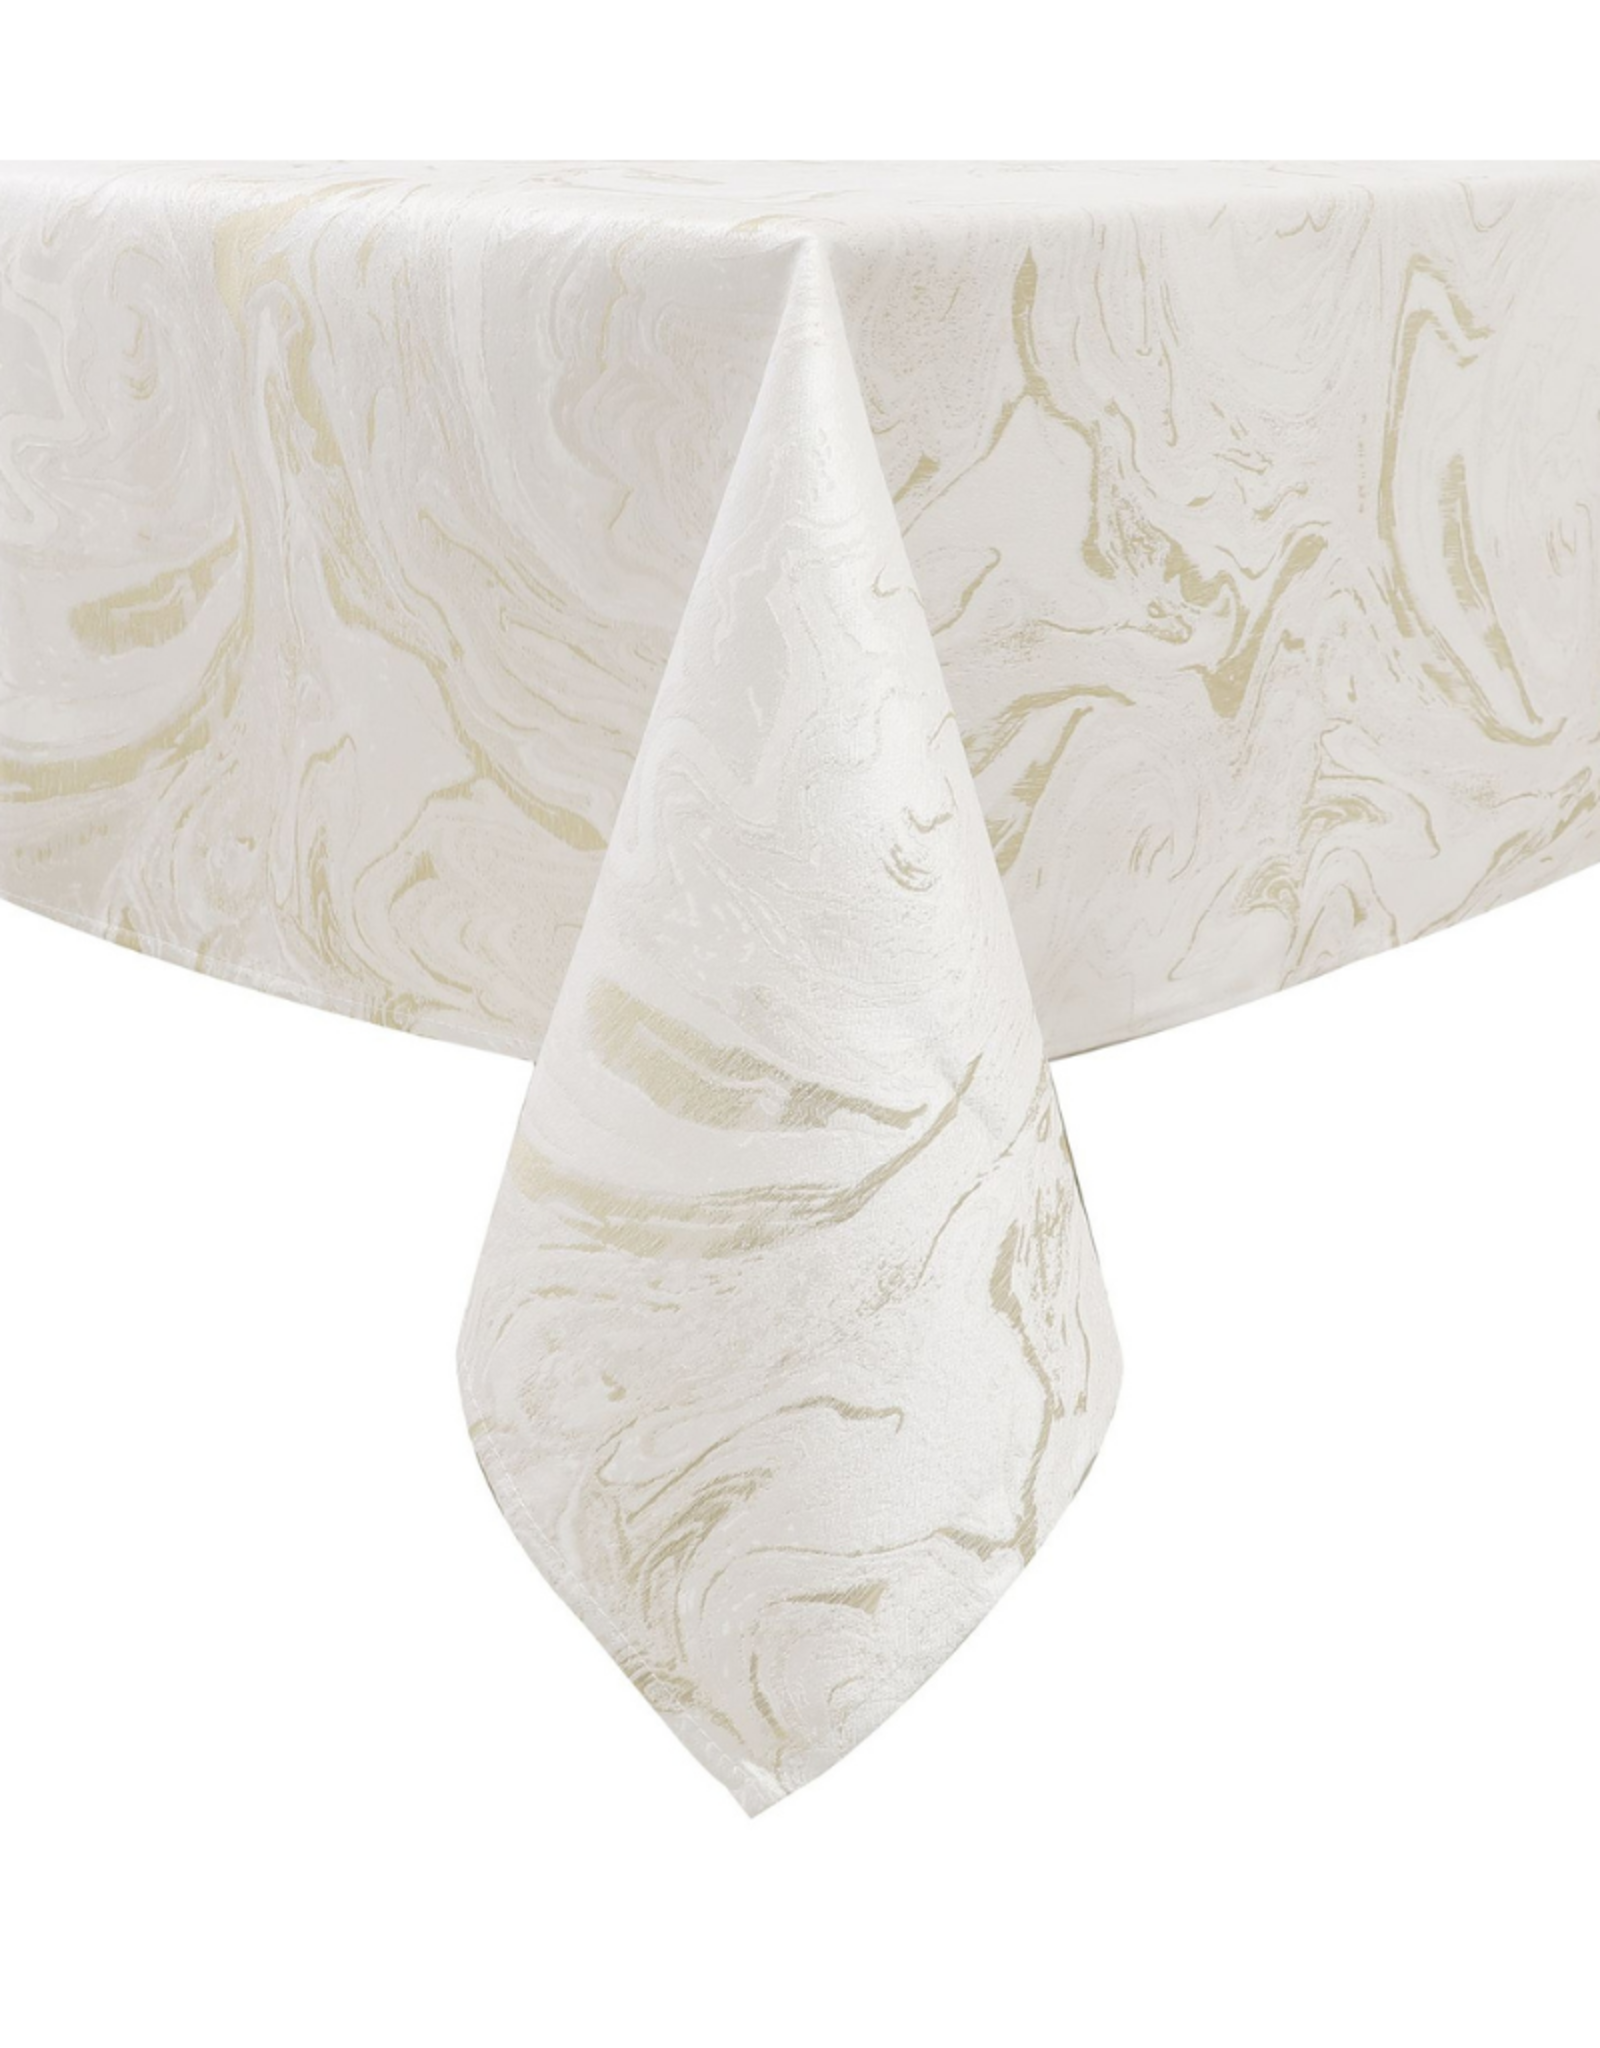 Jacquard White & Gold Wave Tablecloth #1327